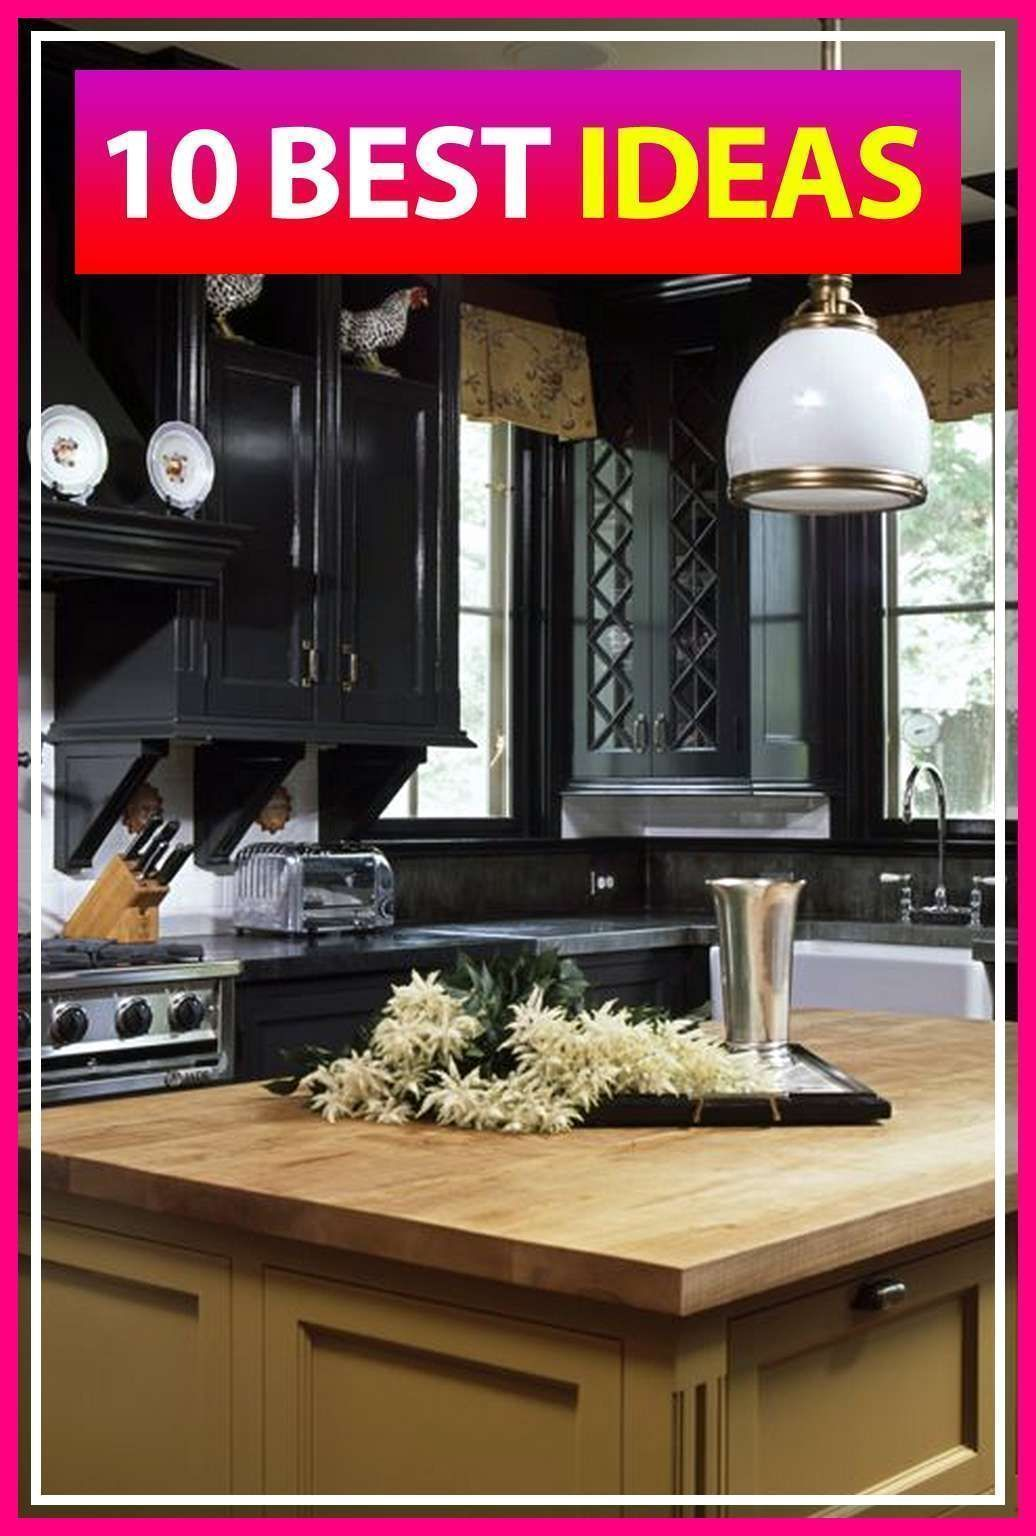 10 Beautiful Lacquered Kitchen Cabinets Two Tone Lights Colors Black Kitchen Cab Painting Kitchen Cabinets Kitchen Cabinets Painted Grey Black Kitchen Cabinets